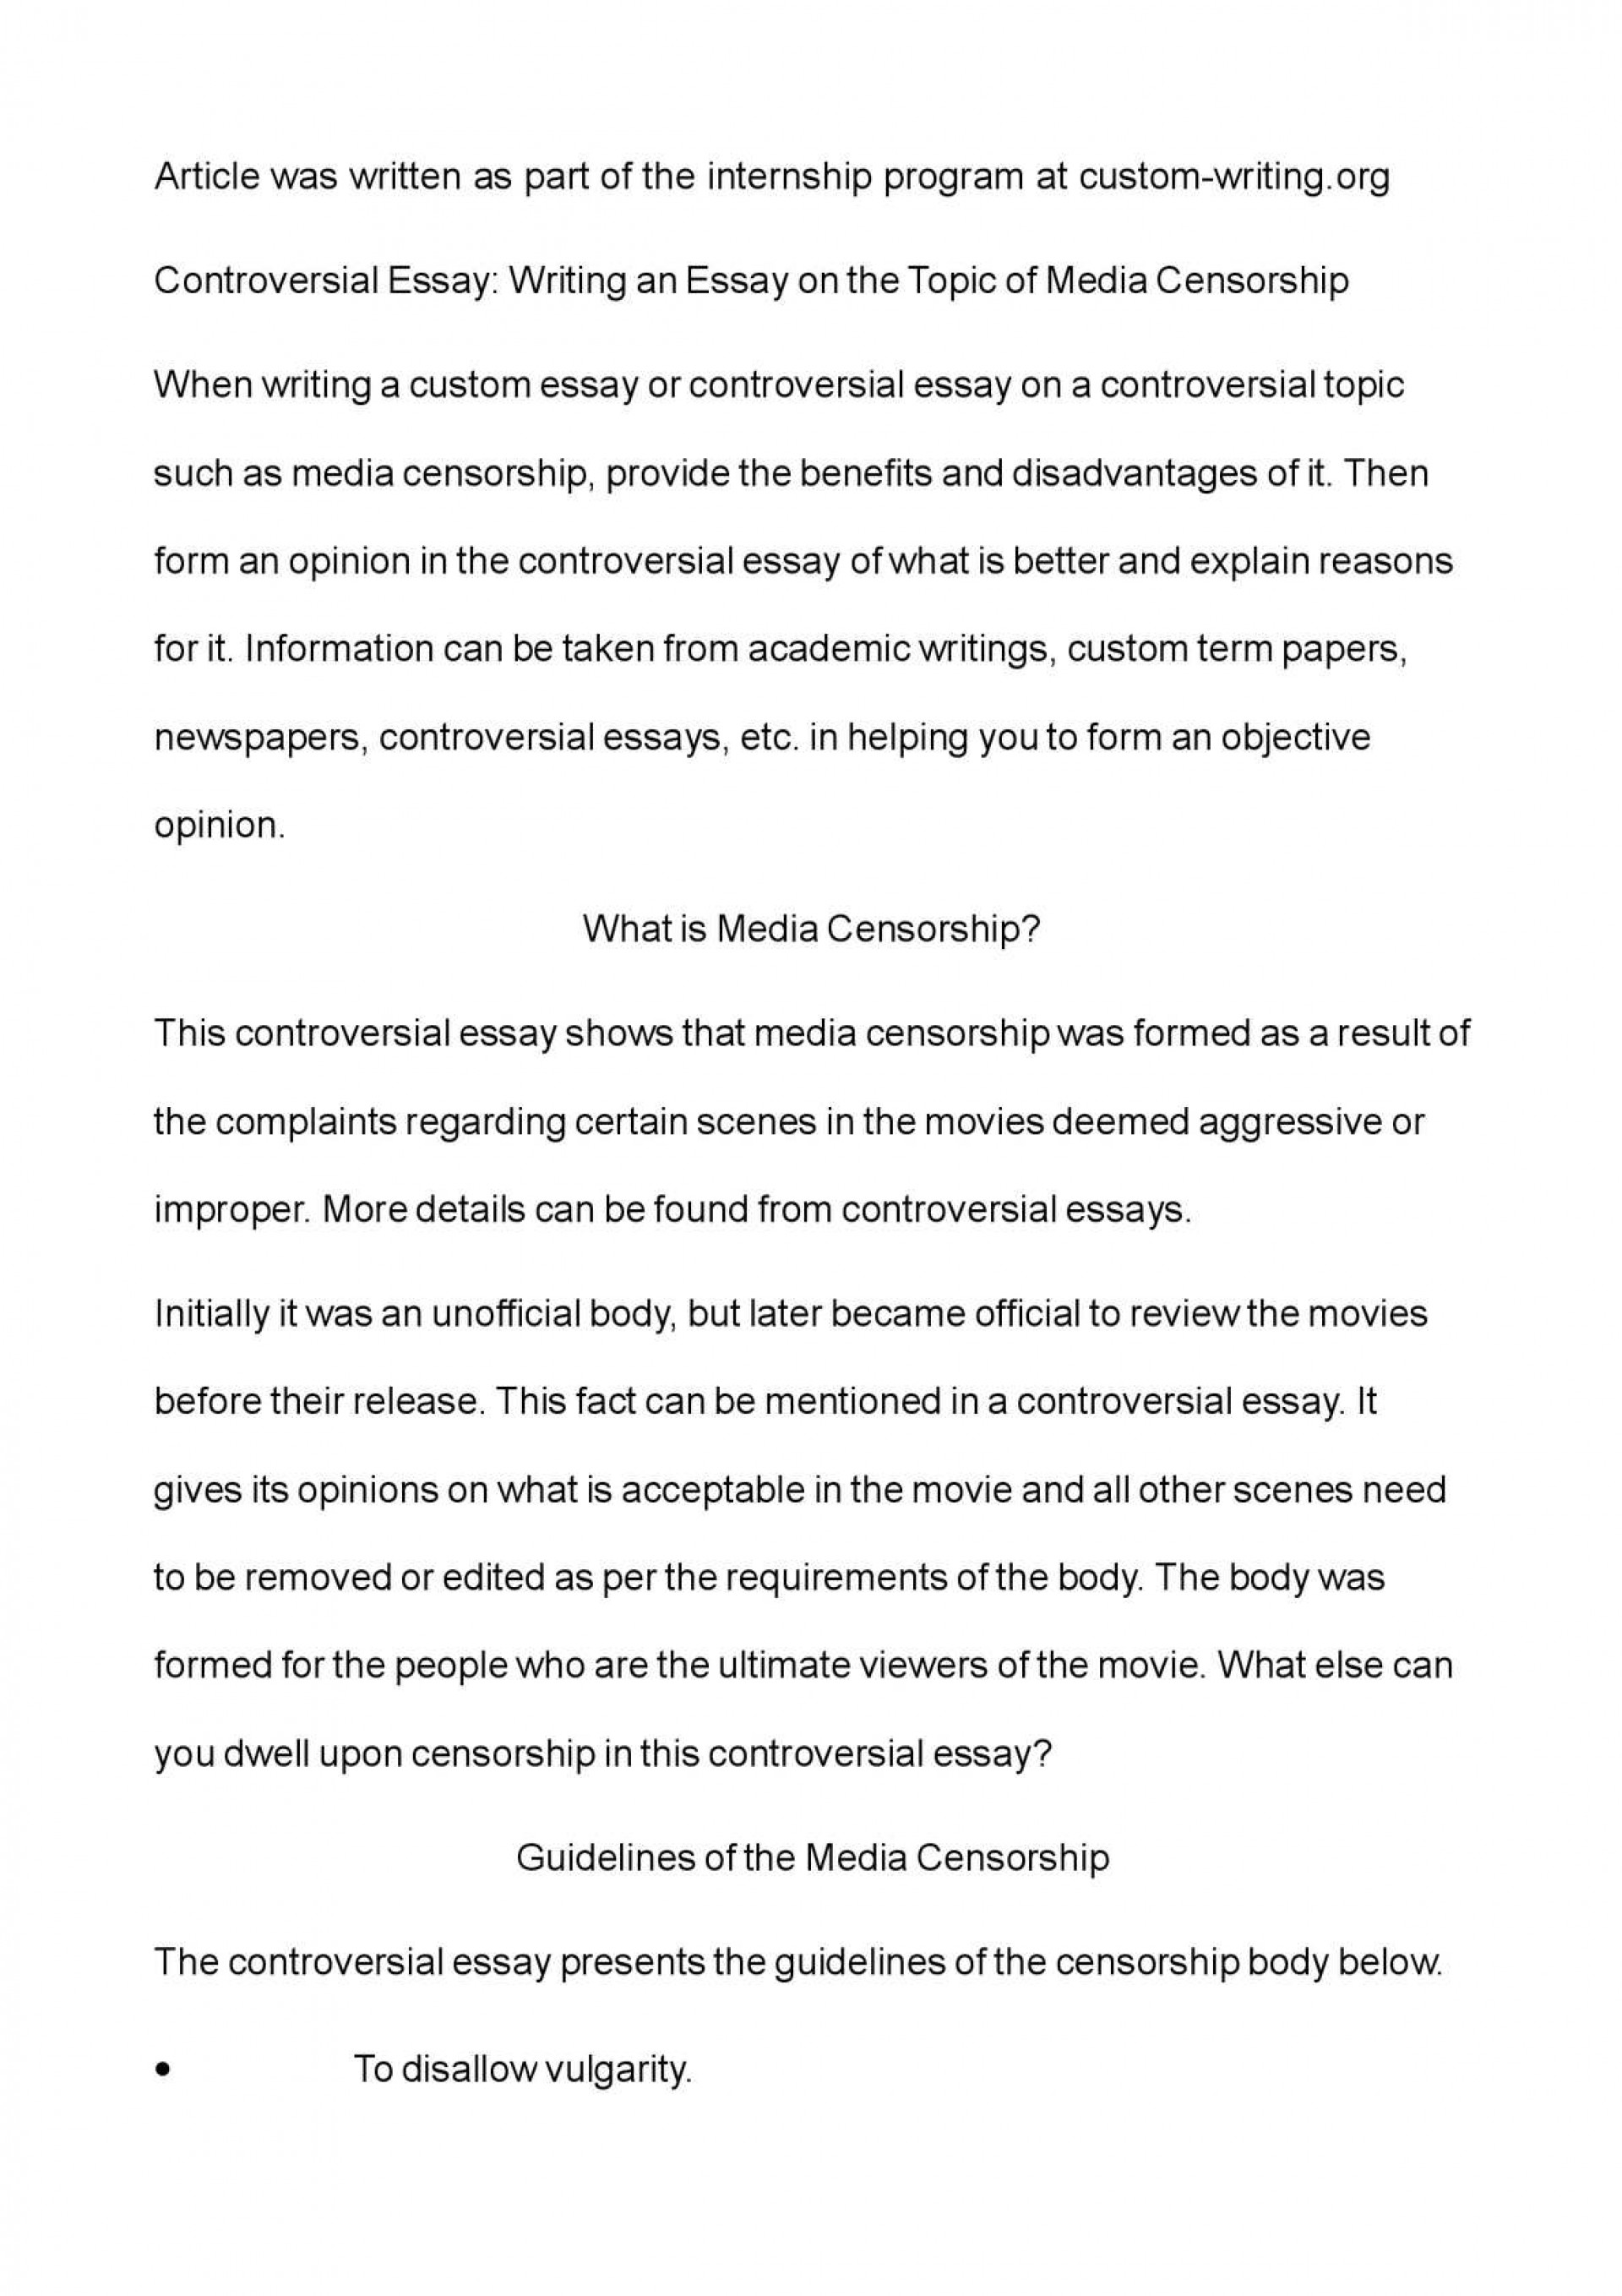 011 Essay Example Controversial Best Topics For High School Students Outline Format On Immigration 1920